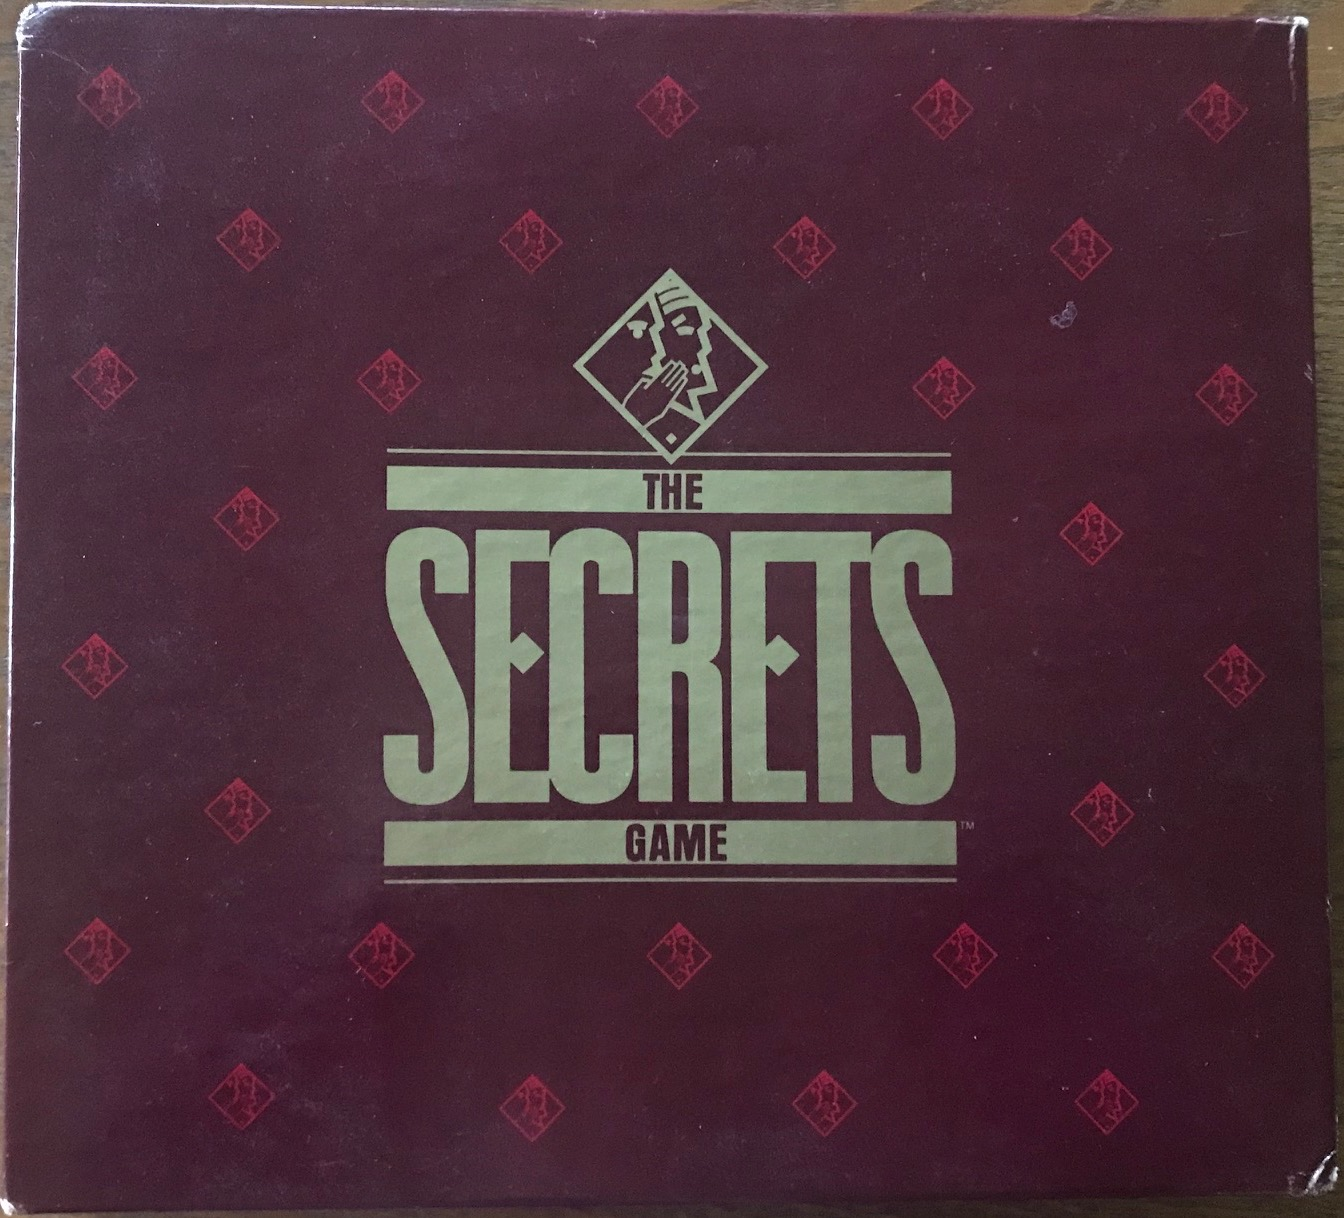 This cover is burgundy with The Secrets Game in gold